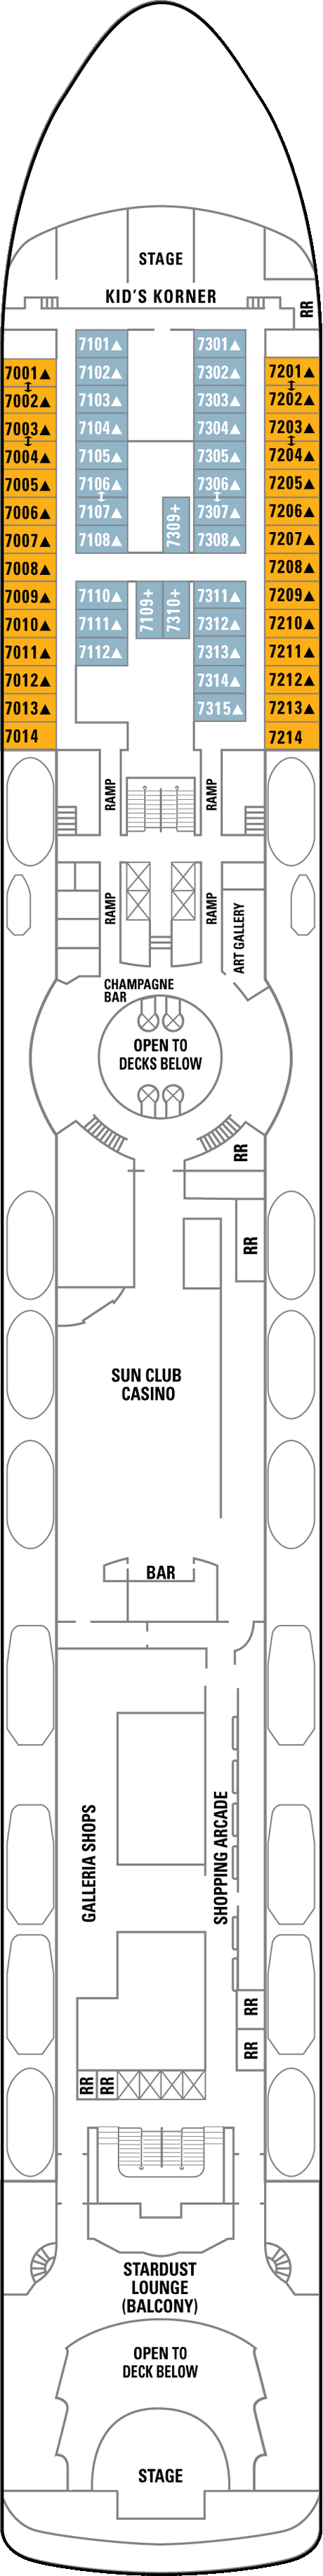 Norwegian Sun International Deck layout